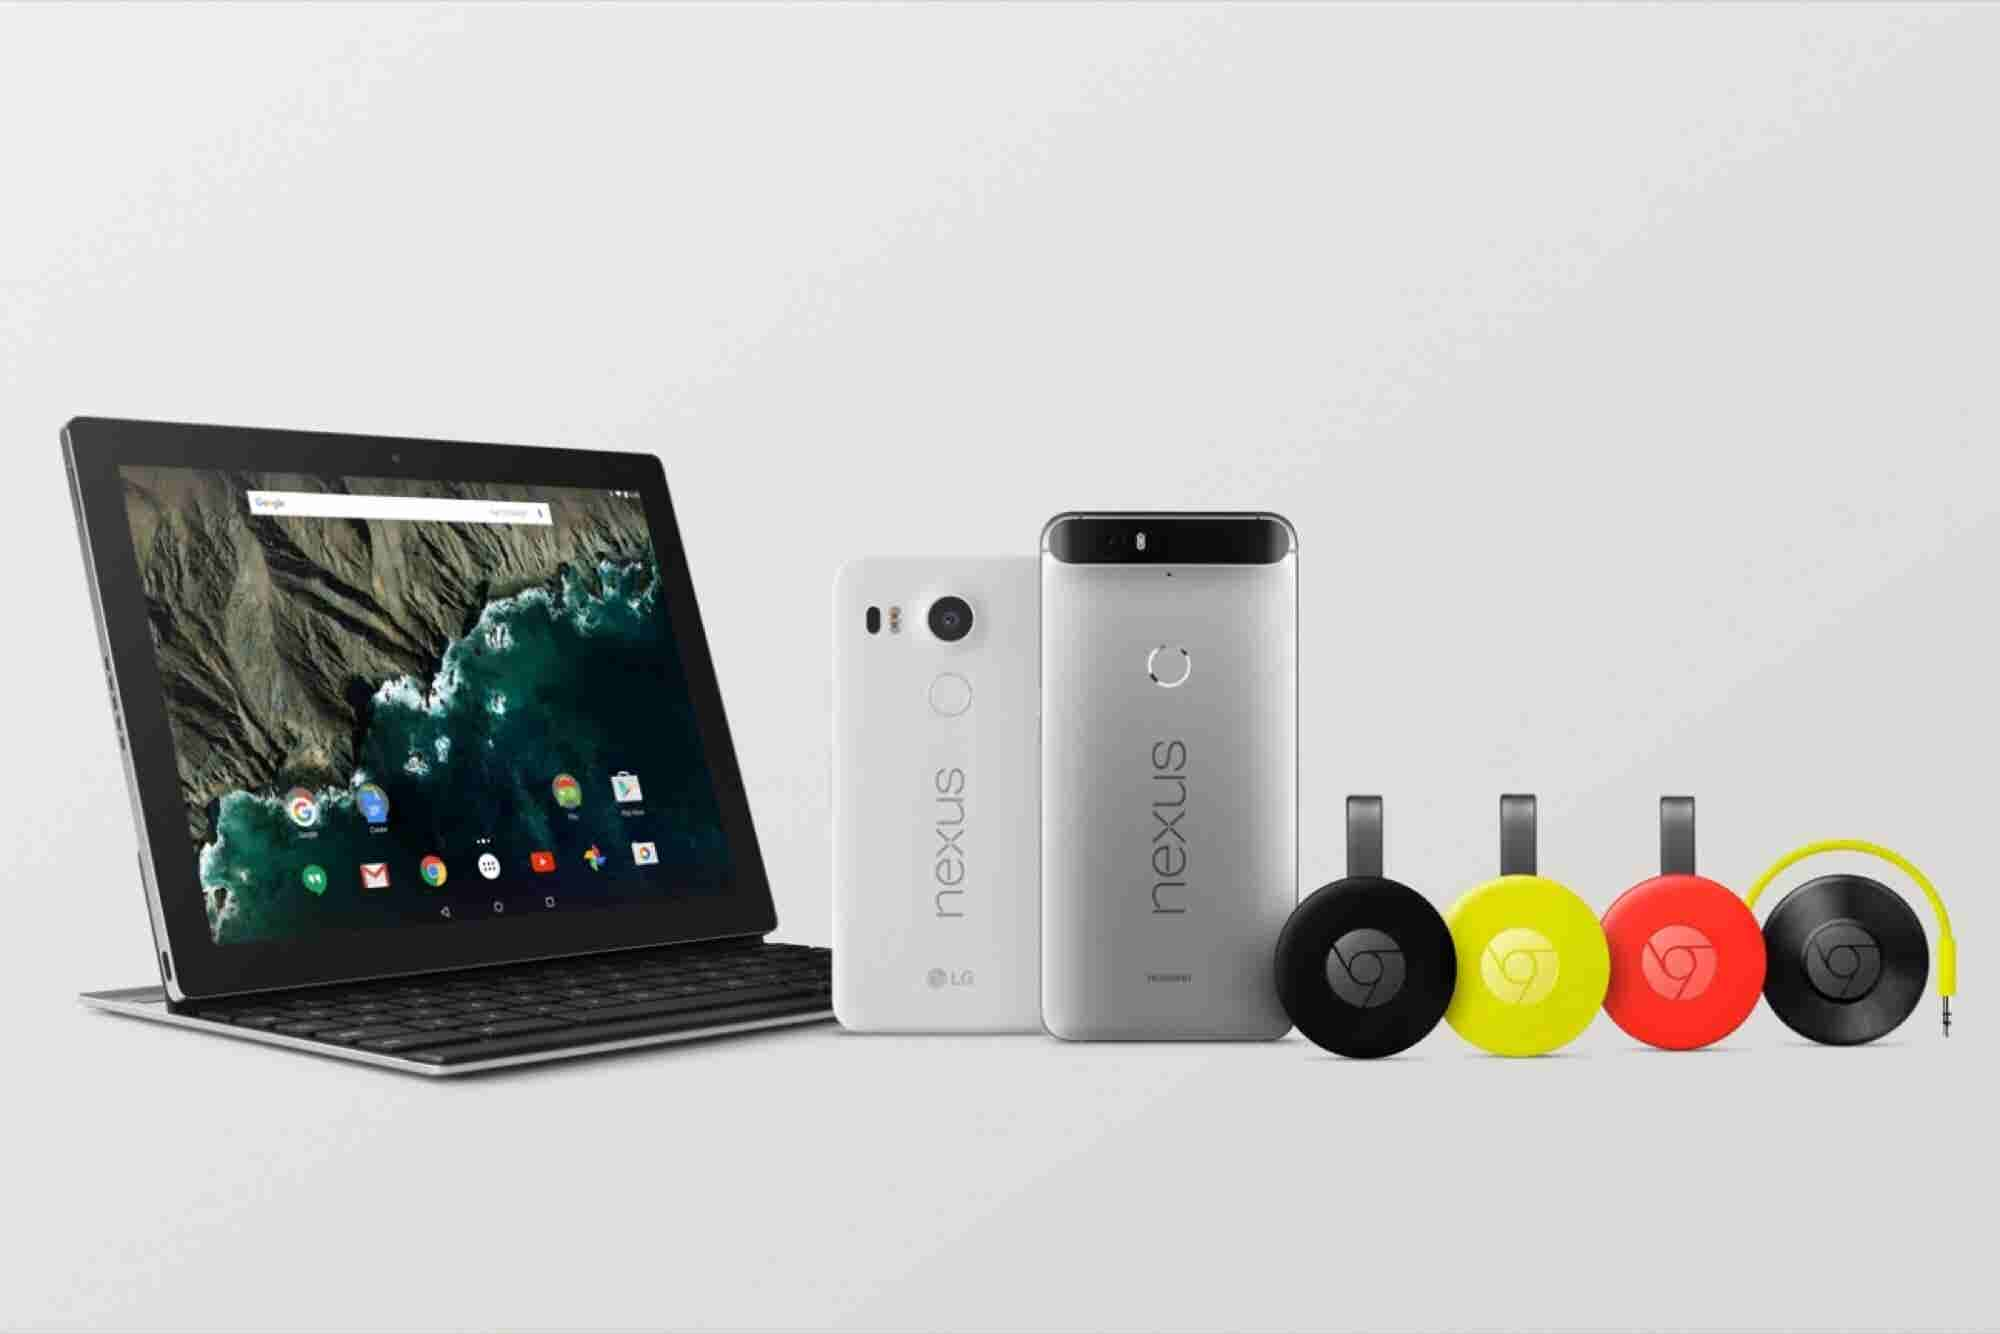 Google Announces Two New Phones and Android 6.0 Marshmallow Availability